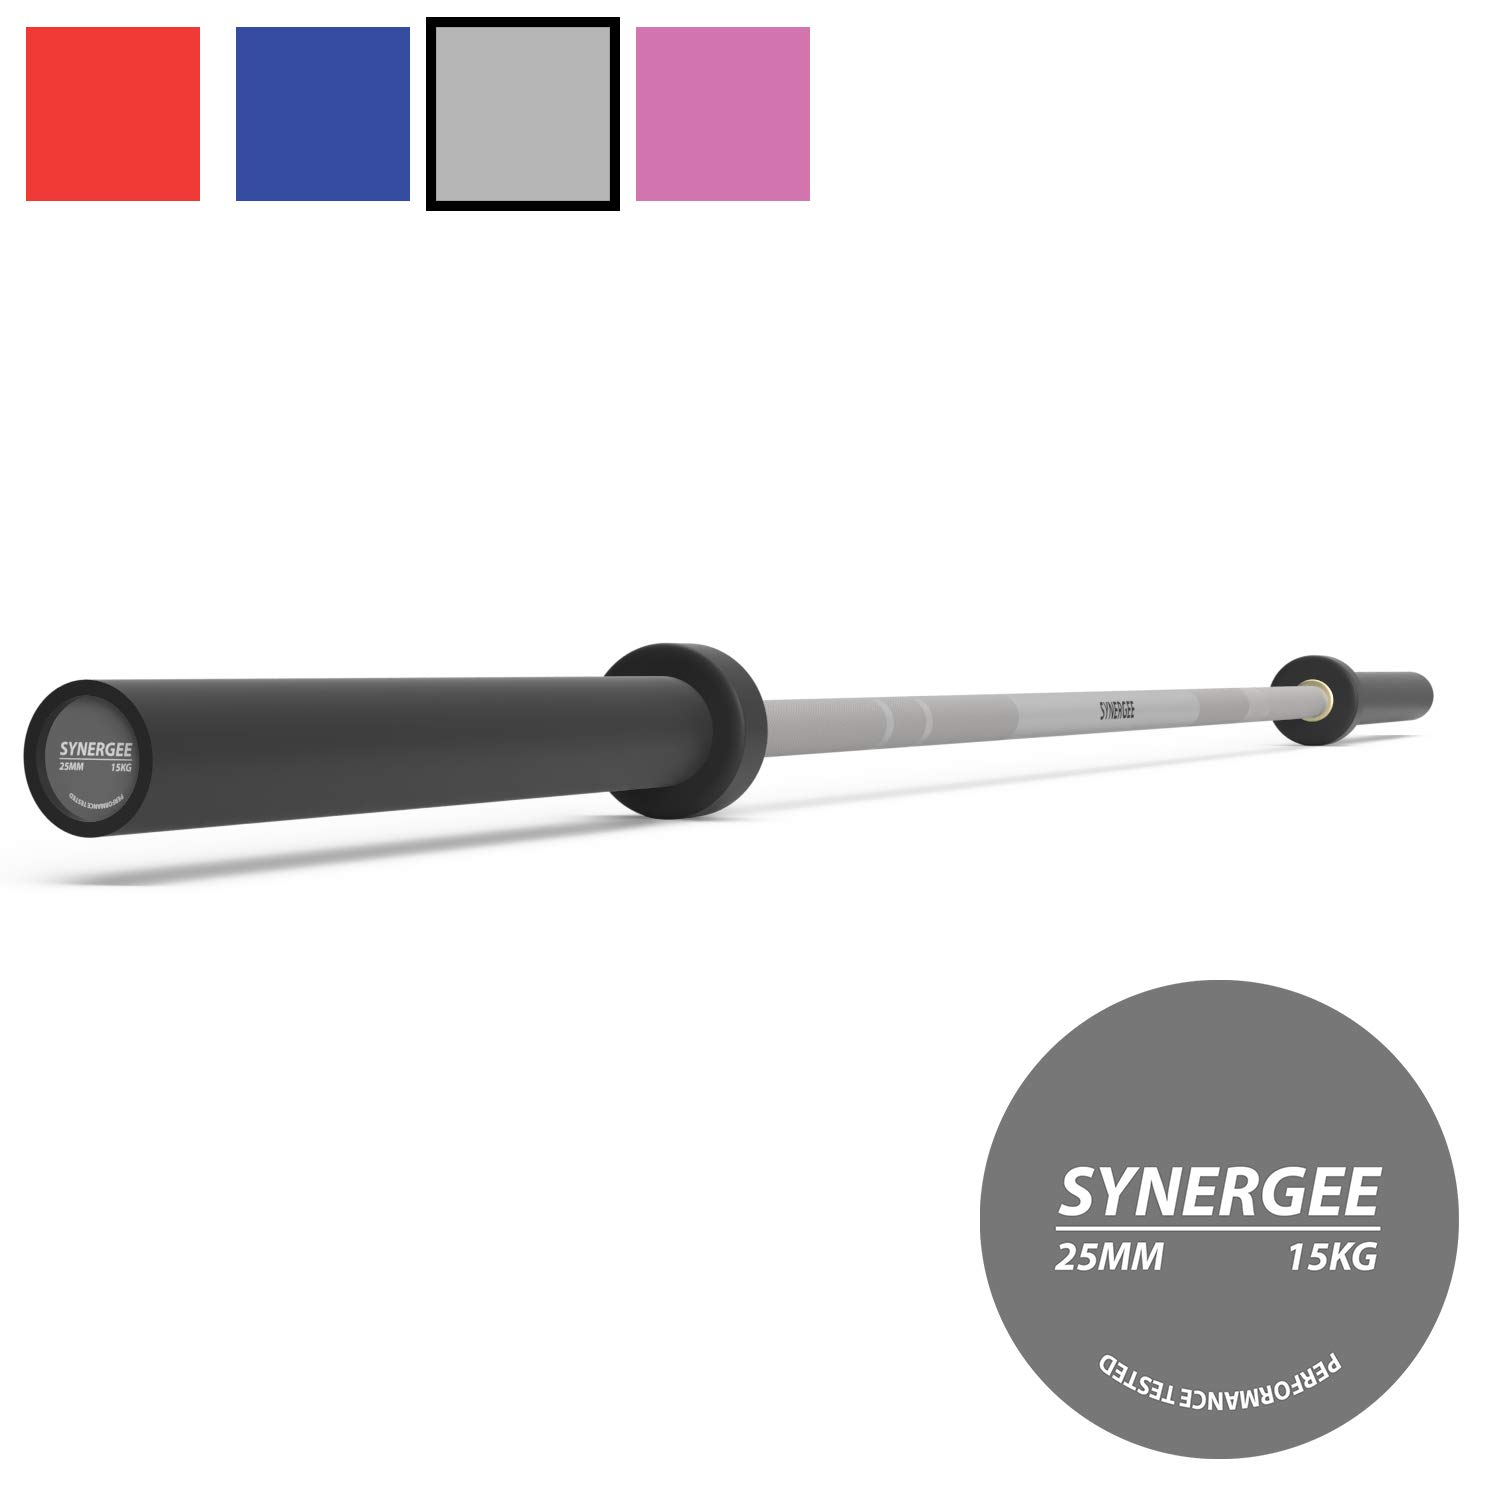 Synergee Games 15kg Colored Women's Gray Cerakote Barbell. Rated 1500lbs for Weightlifting, Powerlifting and Crossfit